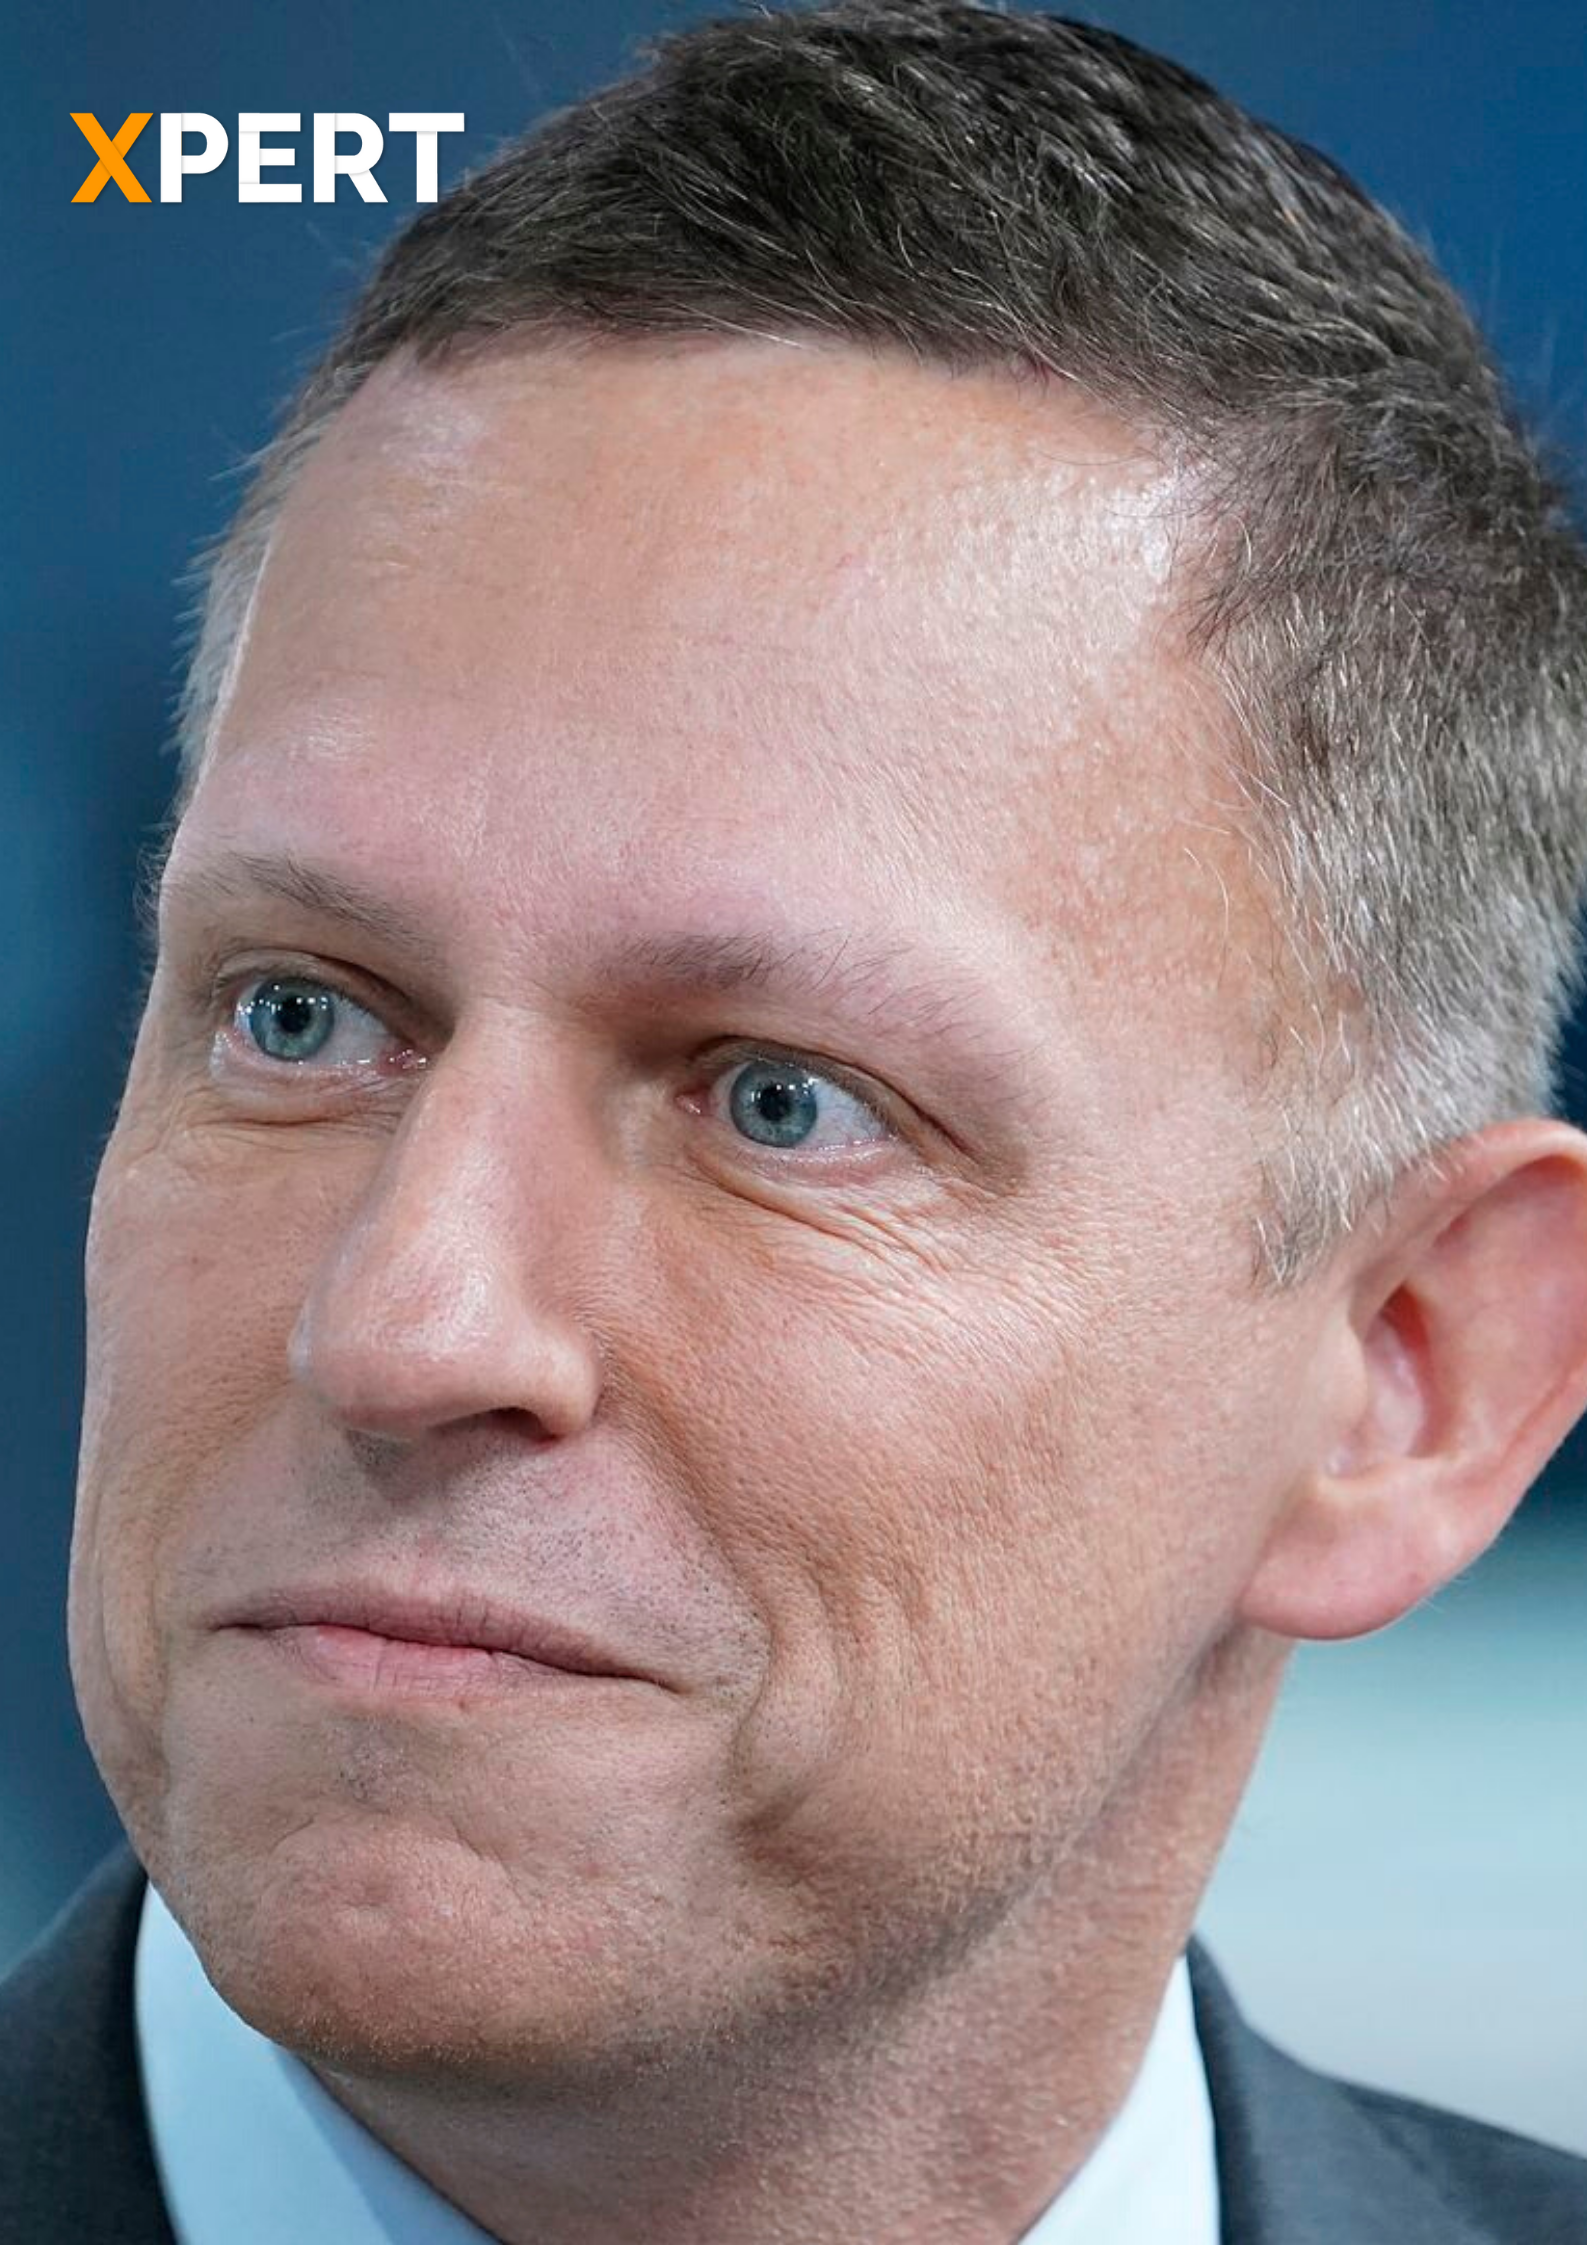 Peter Thiel Human Business Books How Are You Feeling